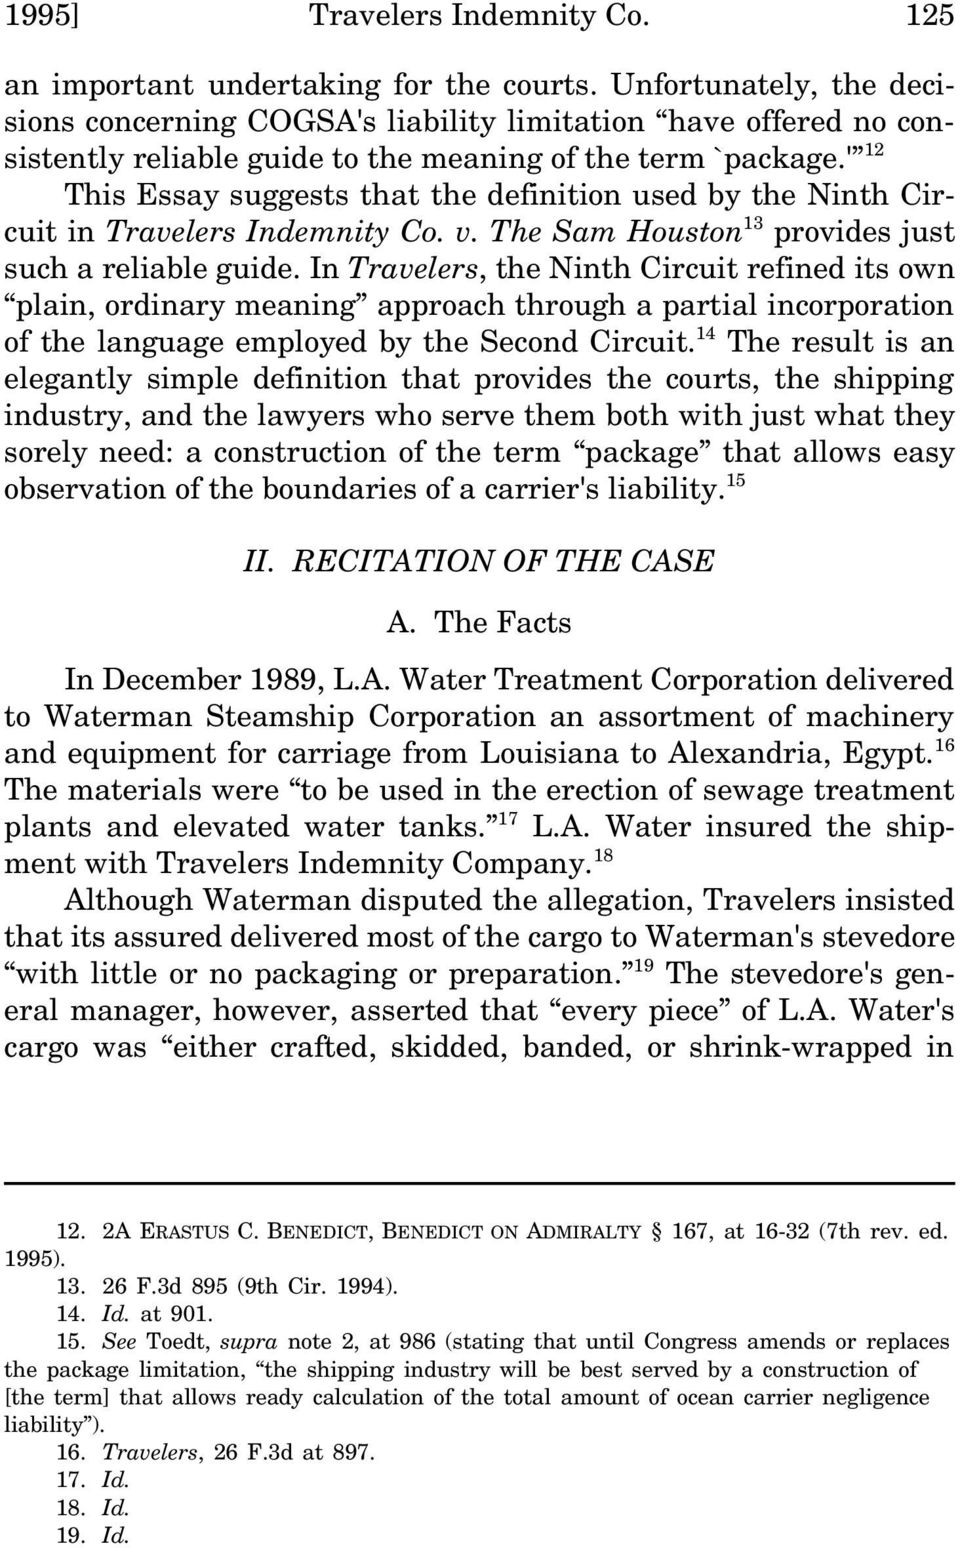 ' 12 This Essay suggests that the definition used by the Ninth Circuit in Travelers Indemnity Co. v. The Sam Houston 13 provides just such a reliable guide.